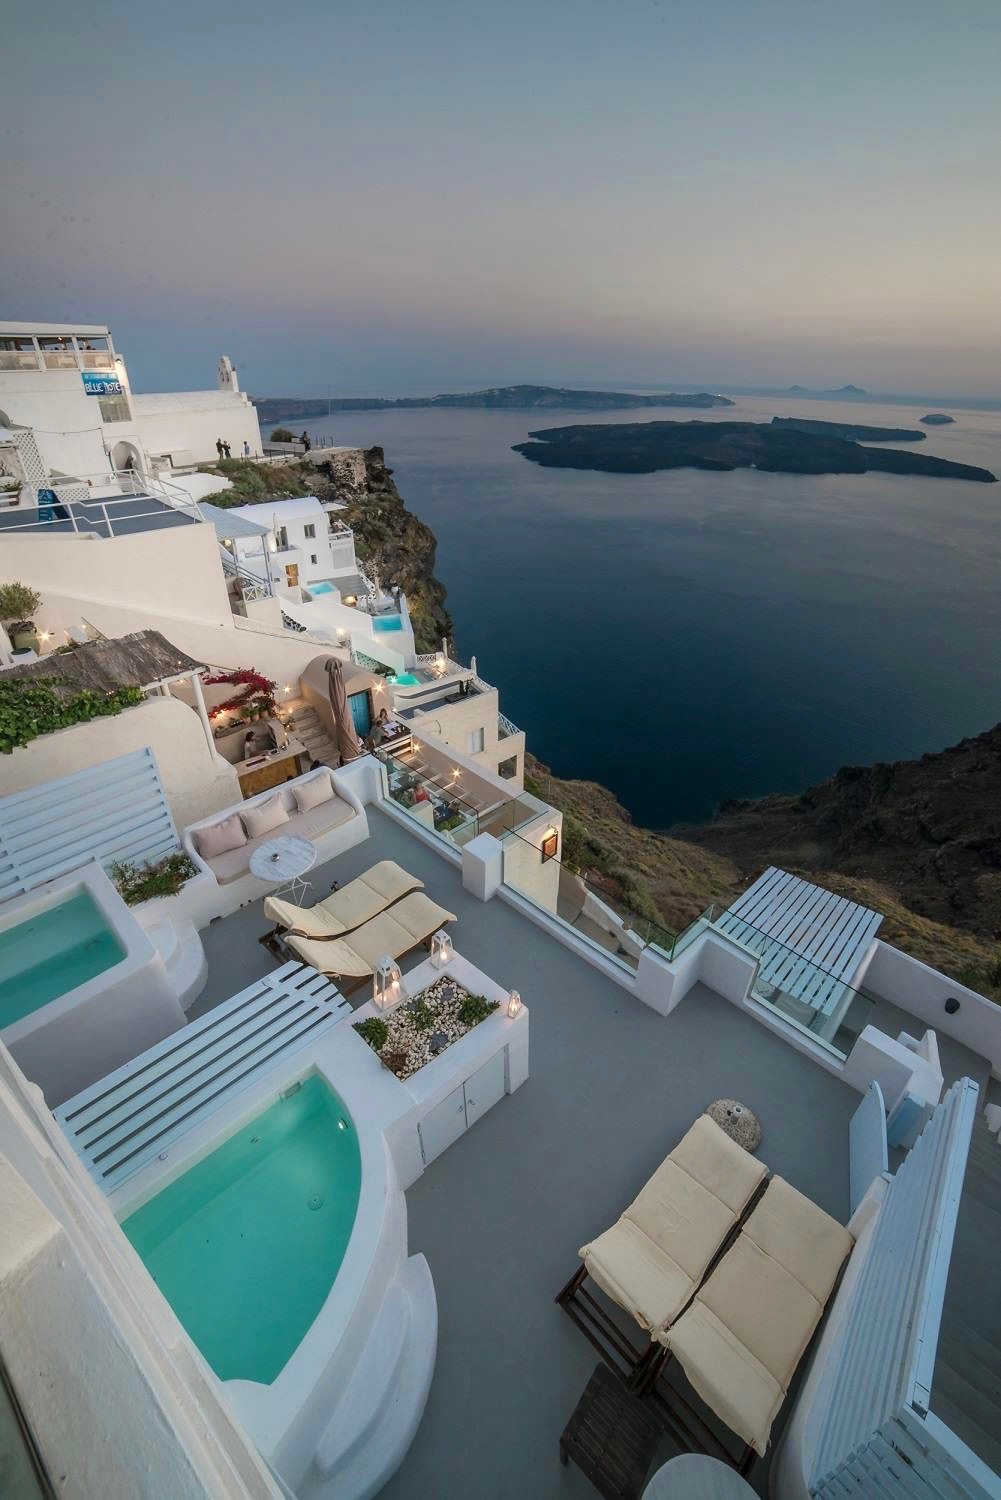 I Could Keep Talking About This Fantastic Hotel But You Will Just Need To Check It Out Yourself Highly Recommend Into Spiliotica On The Cliff When